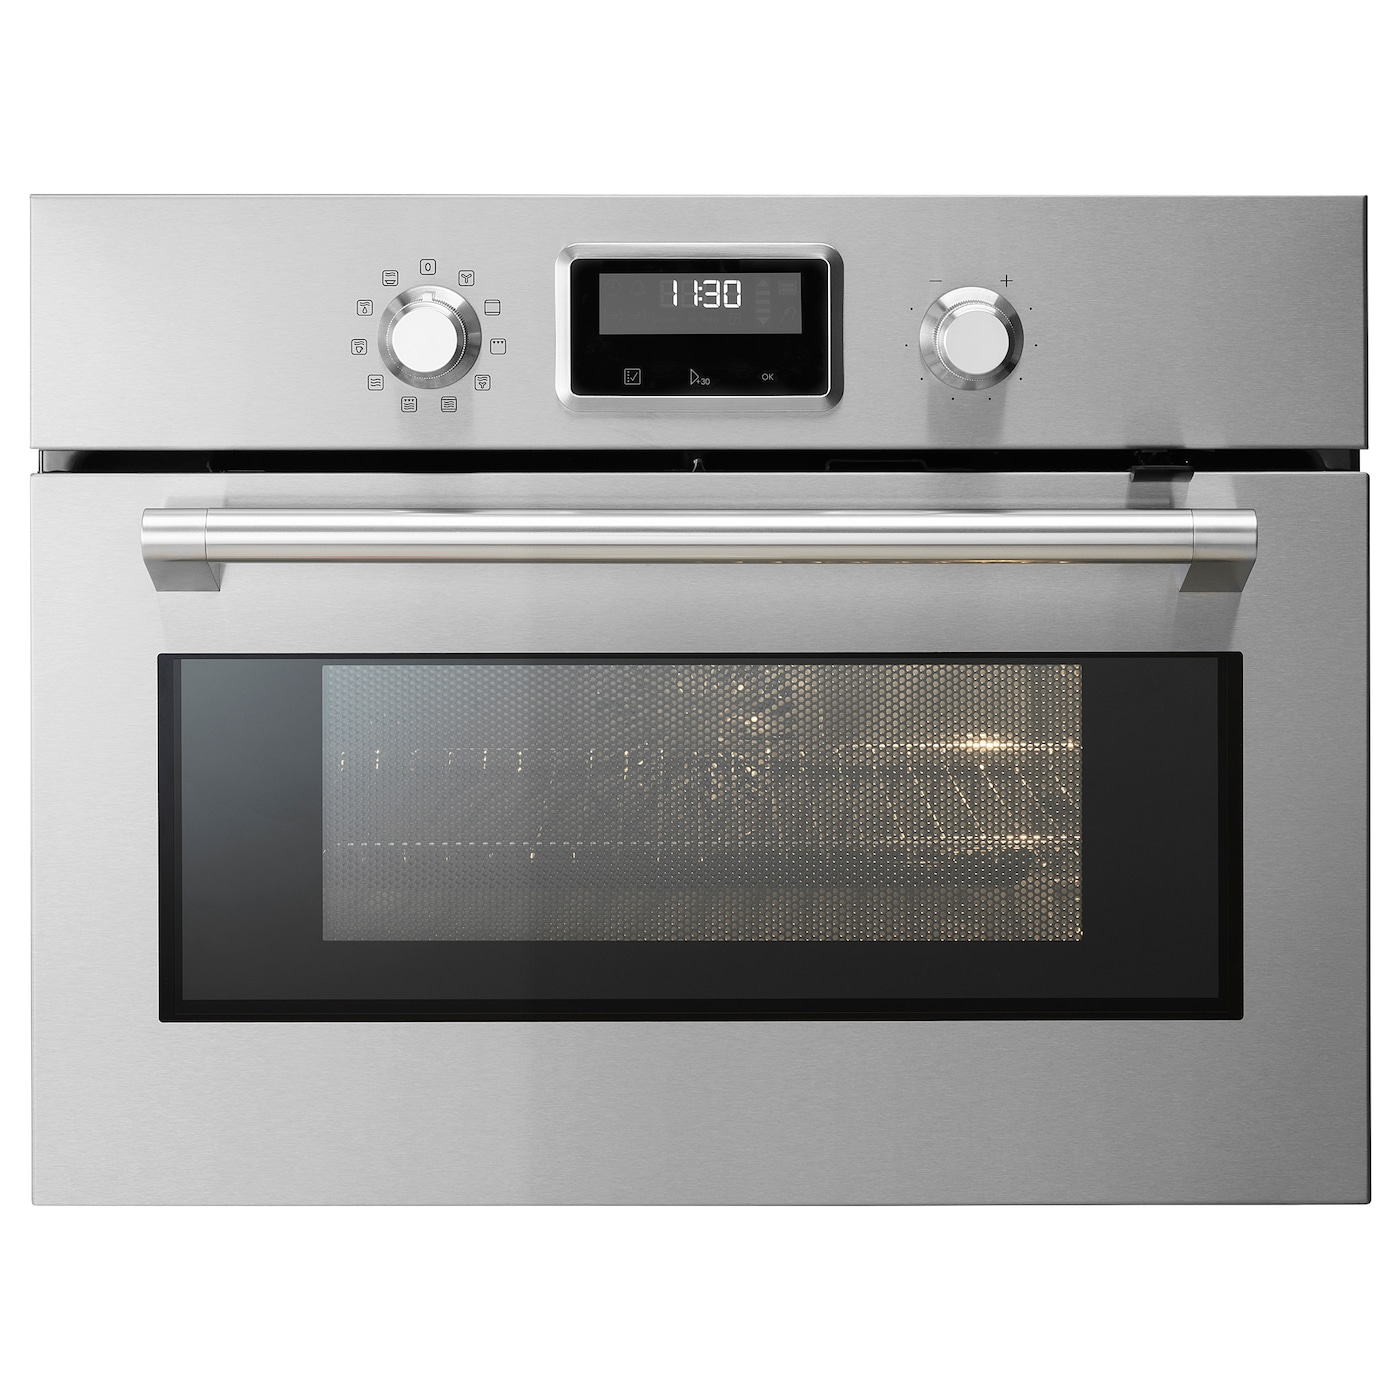 IKEA SMAKSAK microwave combi with forced air